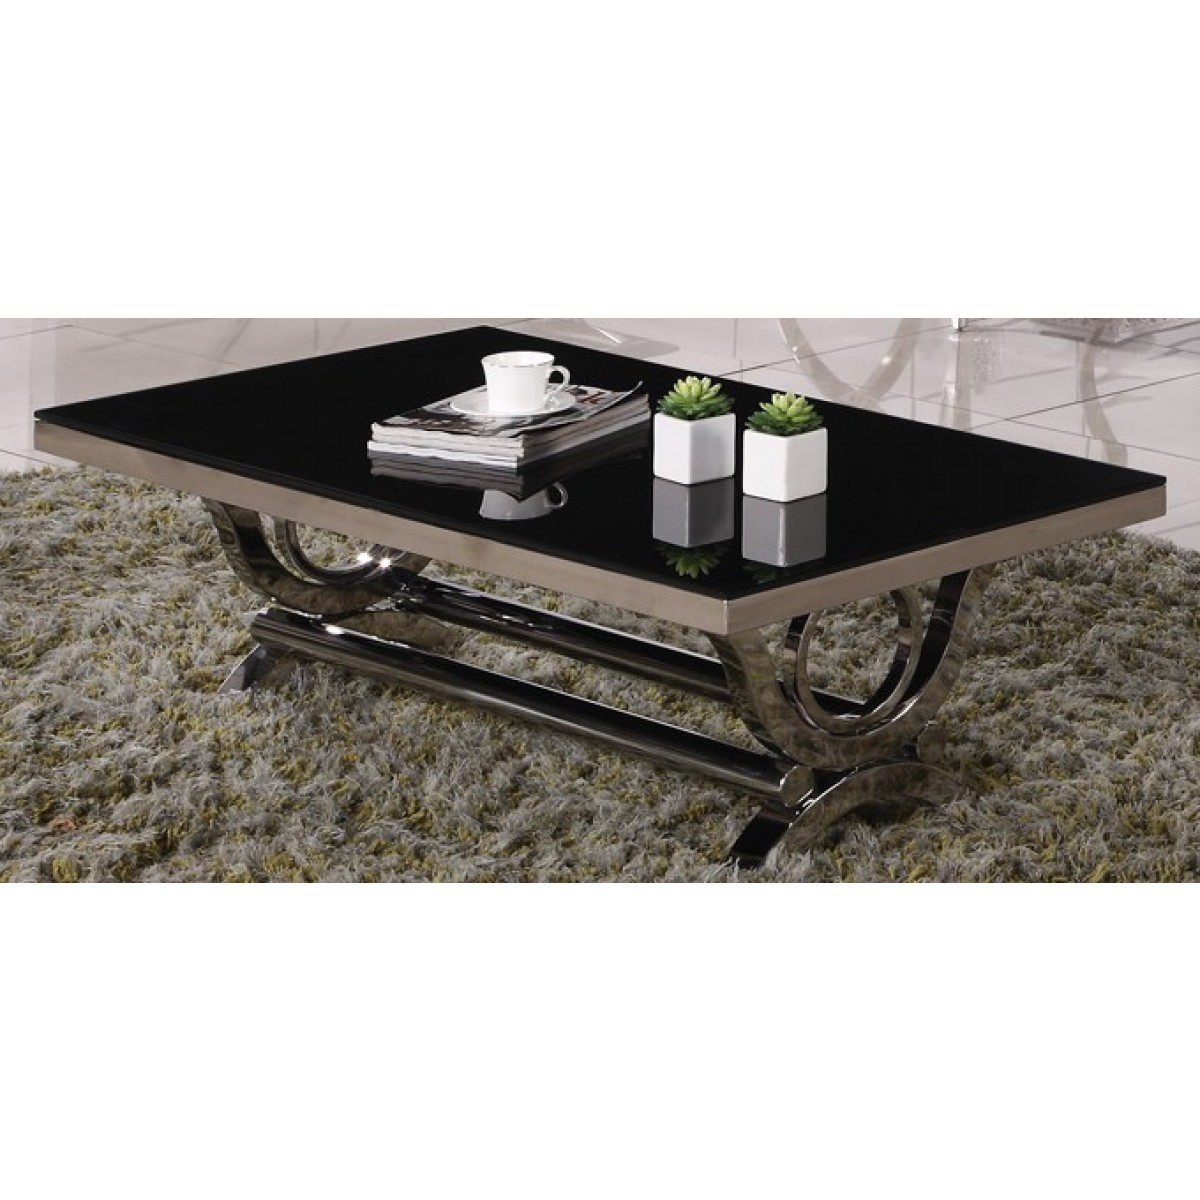 Table basse inox et verre marbre vienna for Vitre pour table basse